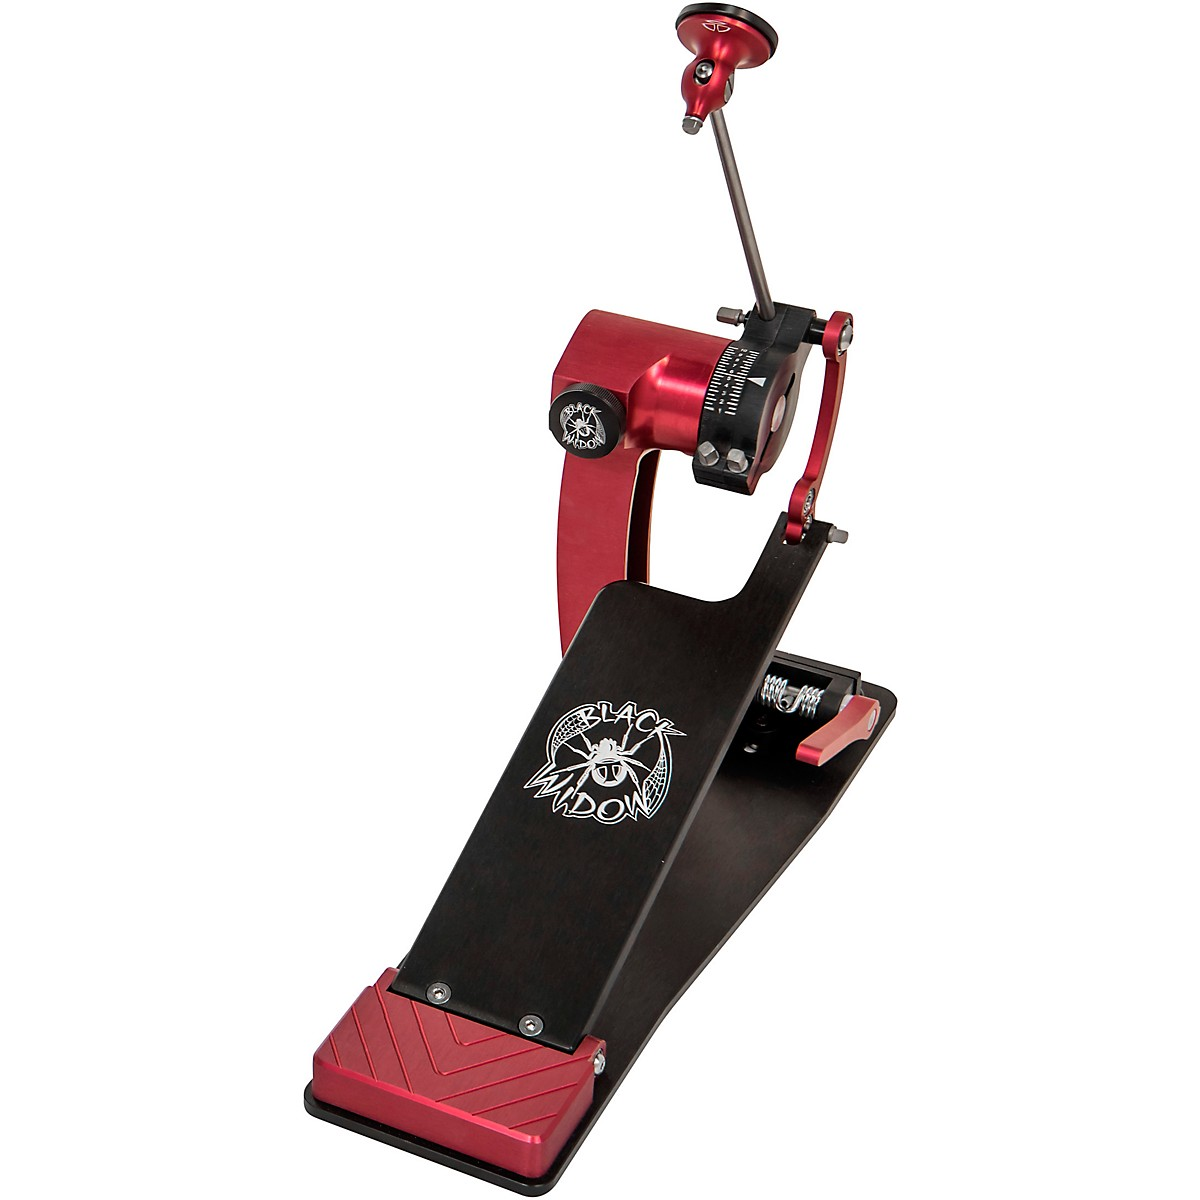 Trick Pro1-V Black Widow ShortBoard Single Bass Drum Pedal